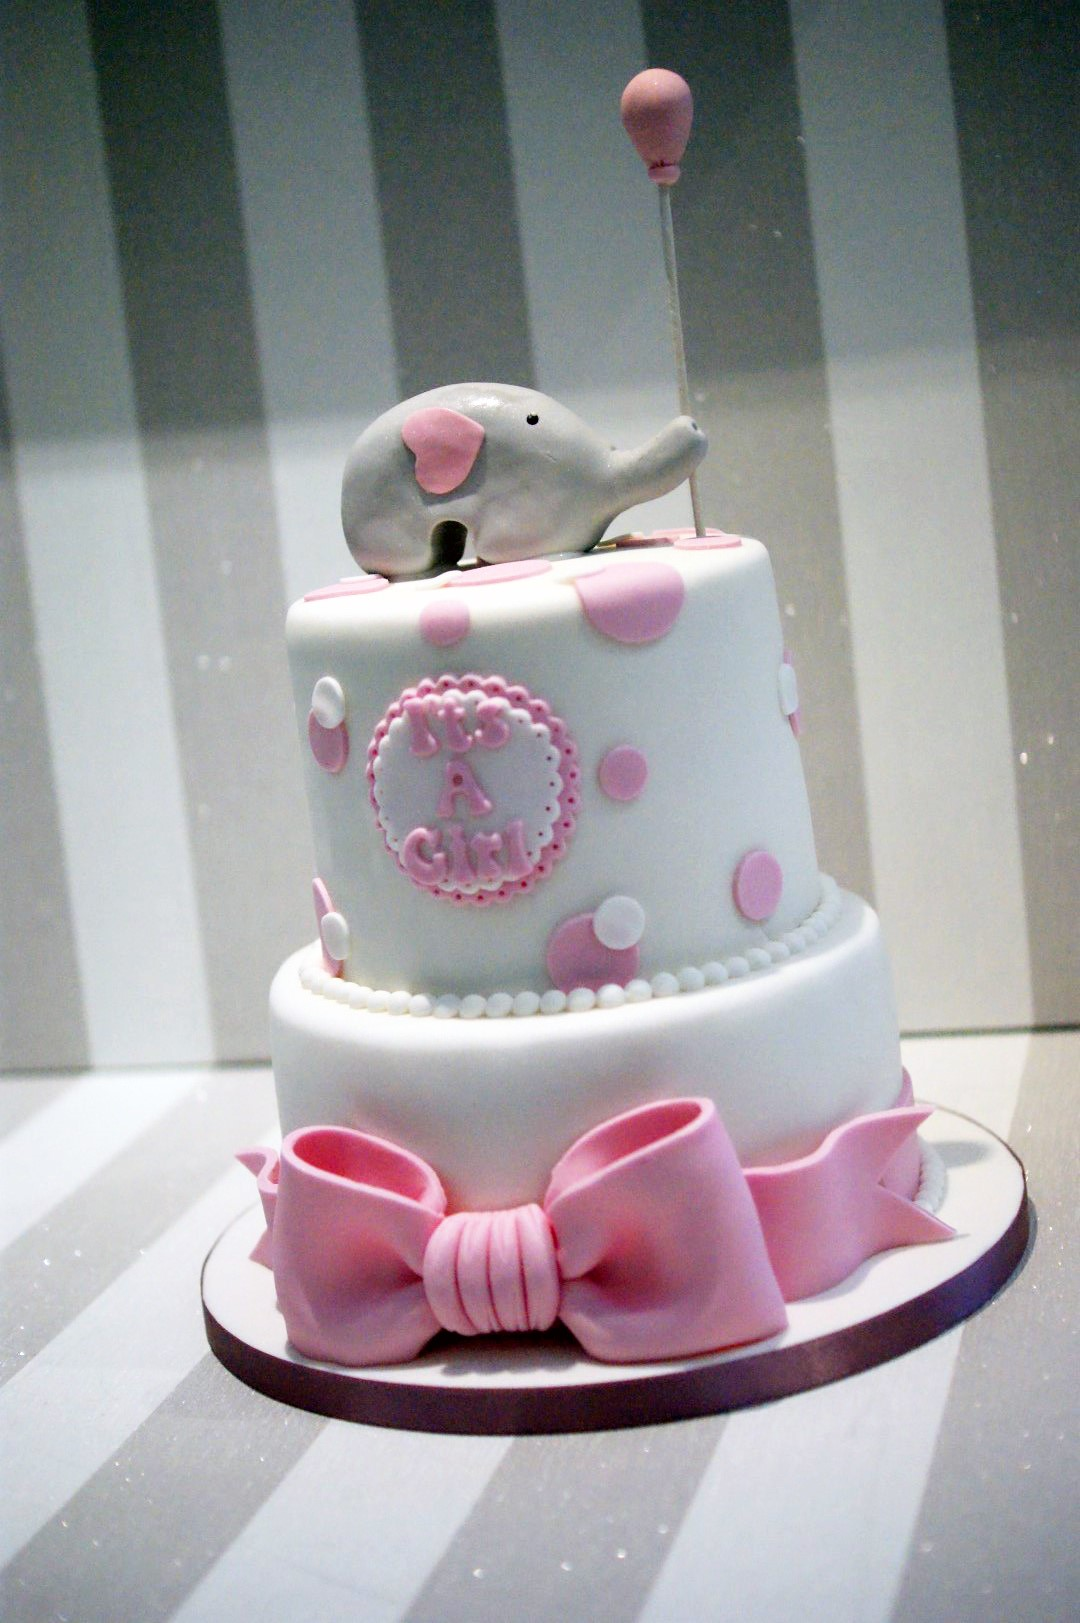 baby shower cakes 2 tier elephant baby shower cake posted 2 years ago